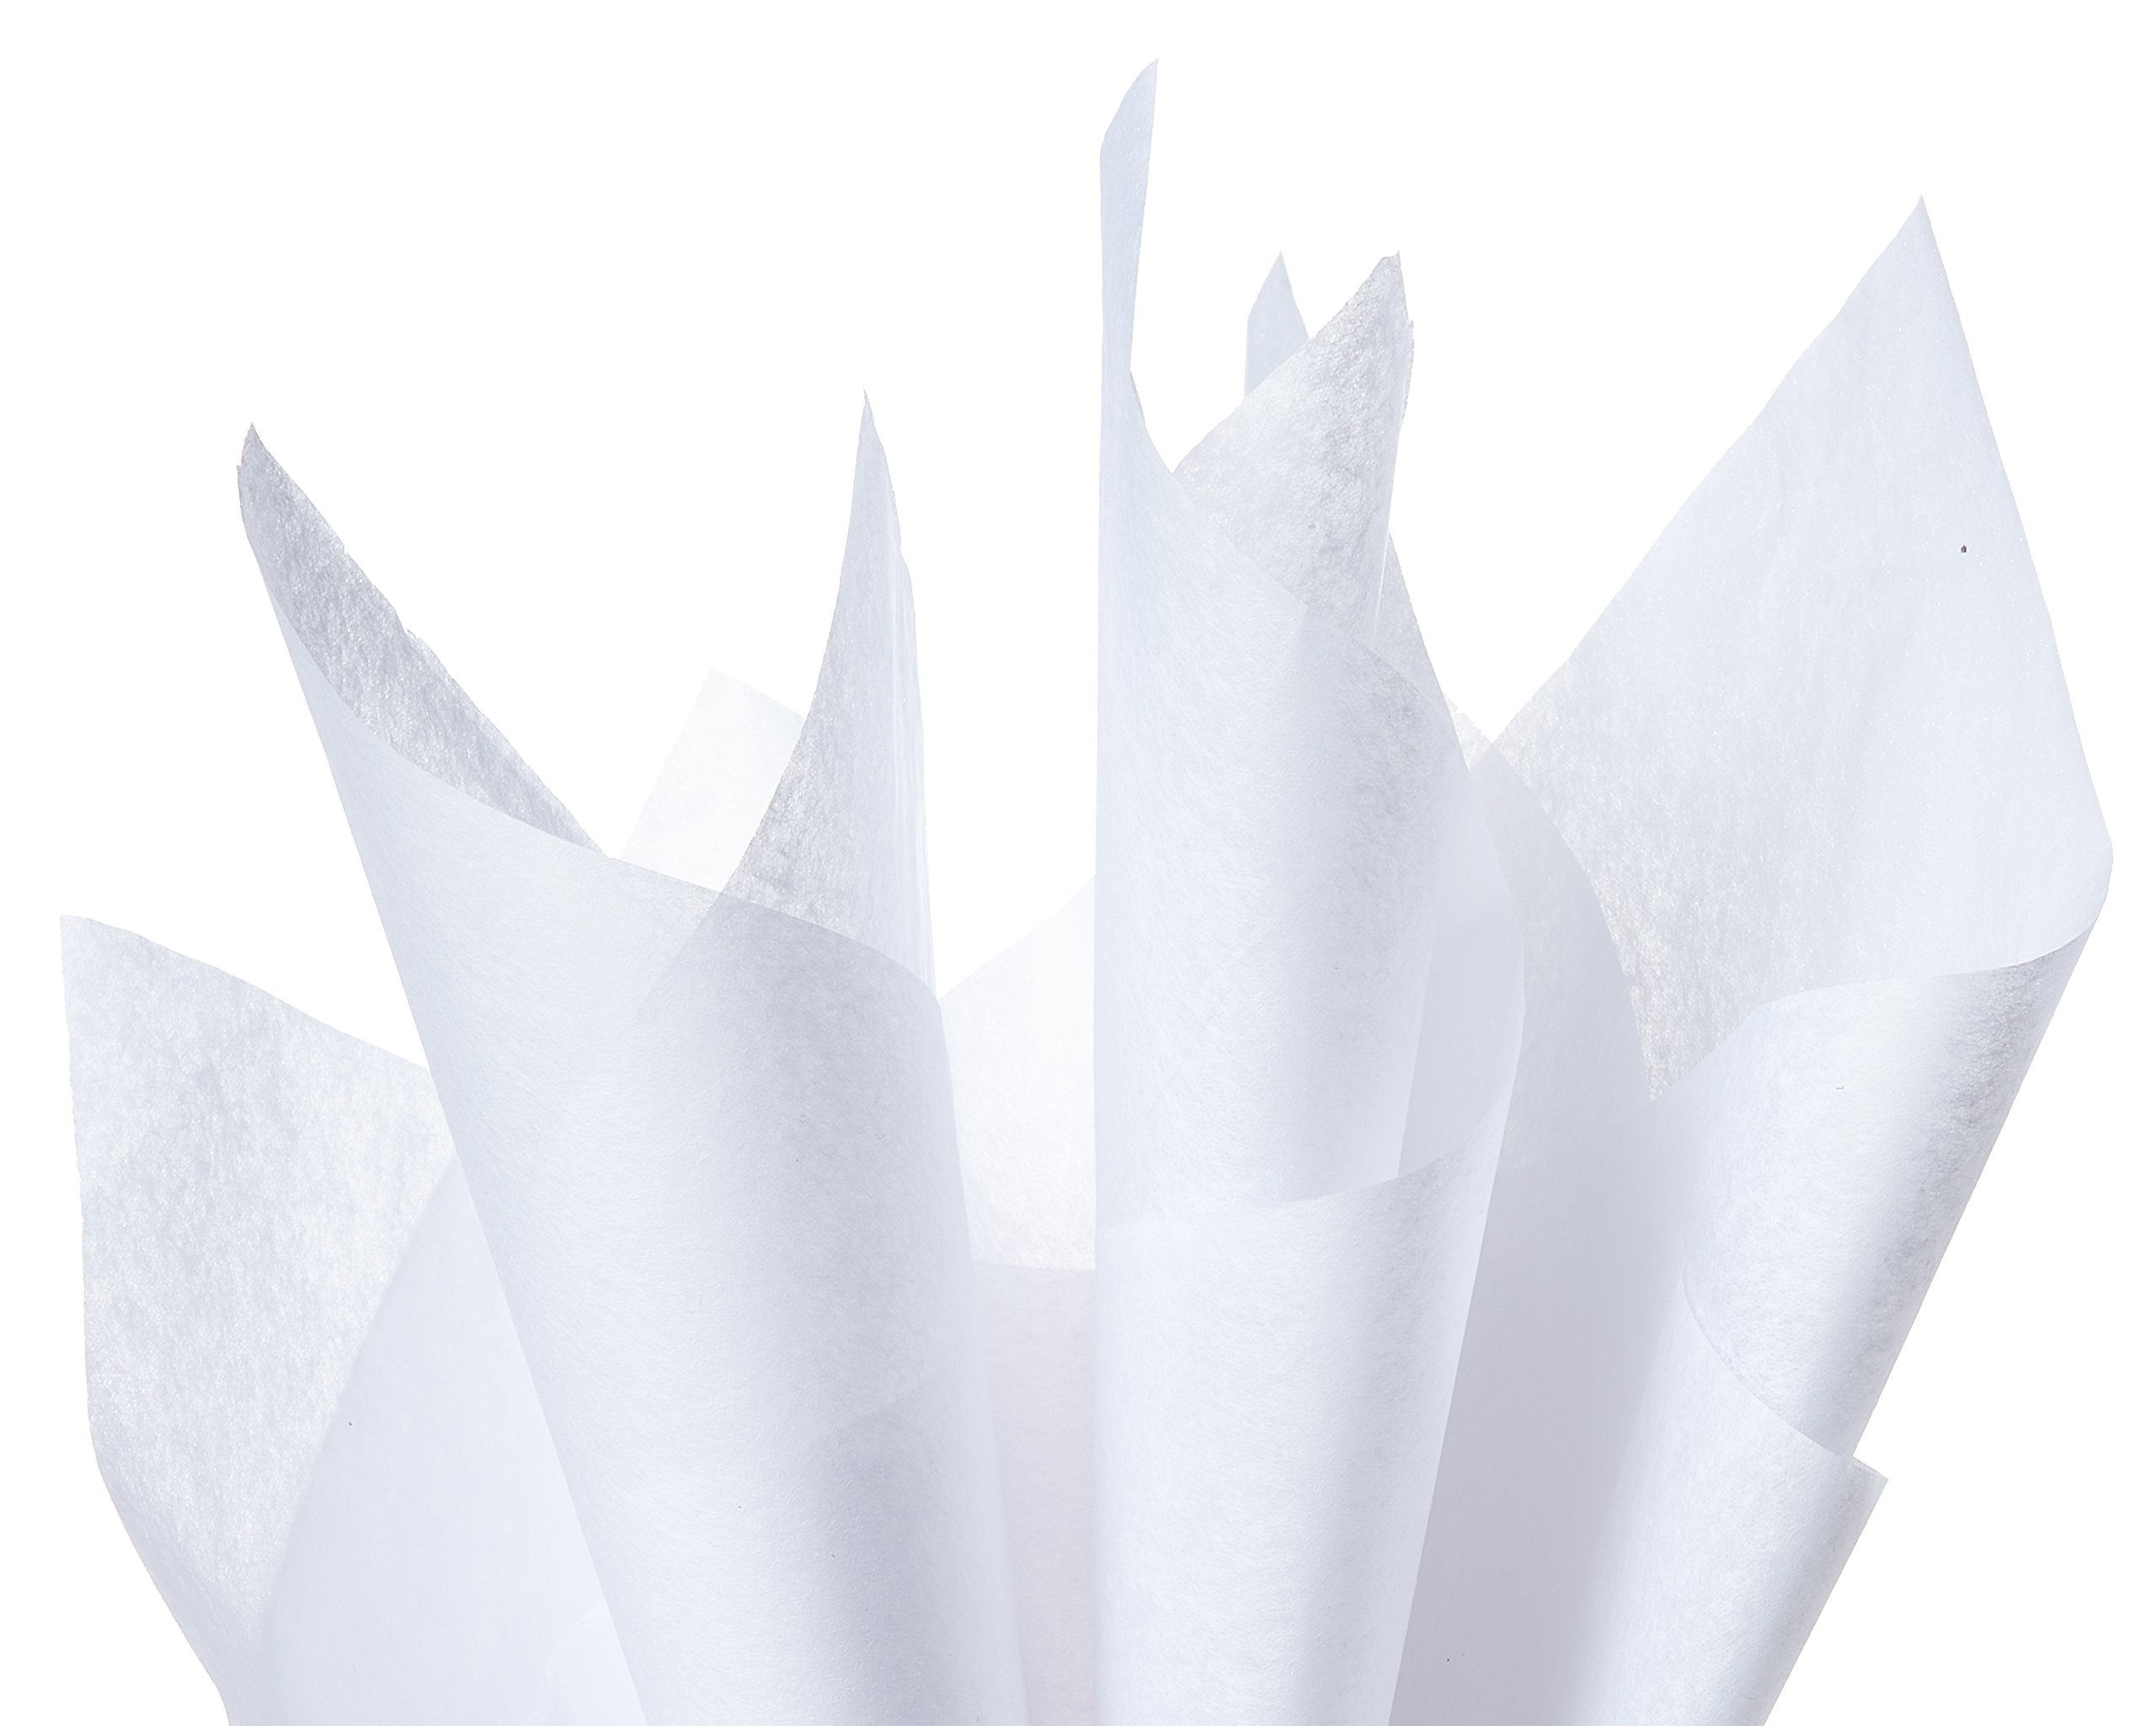 American Greetings Holiday Tissue Paper, White (100-Sheets)